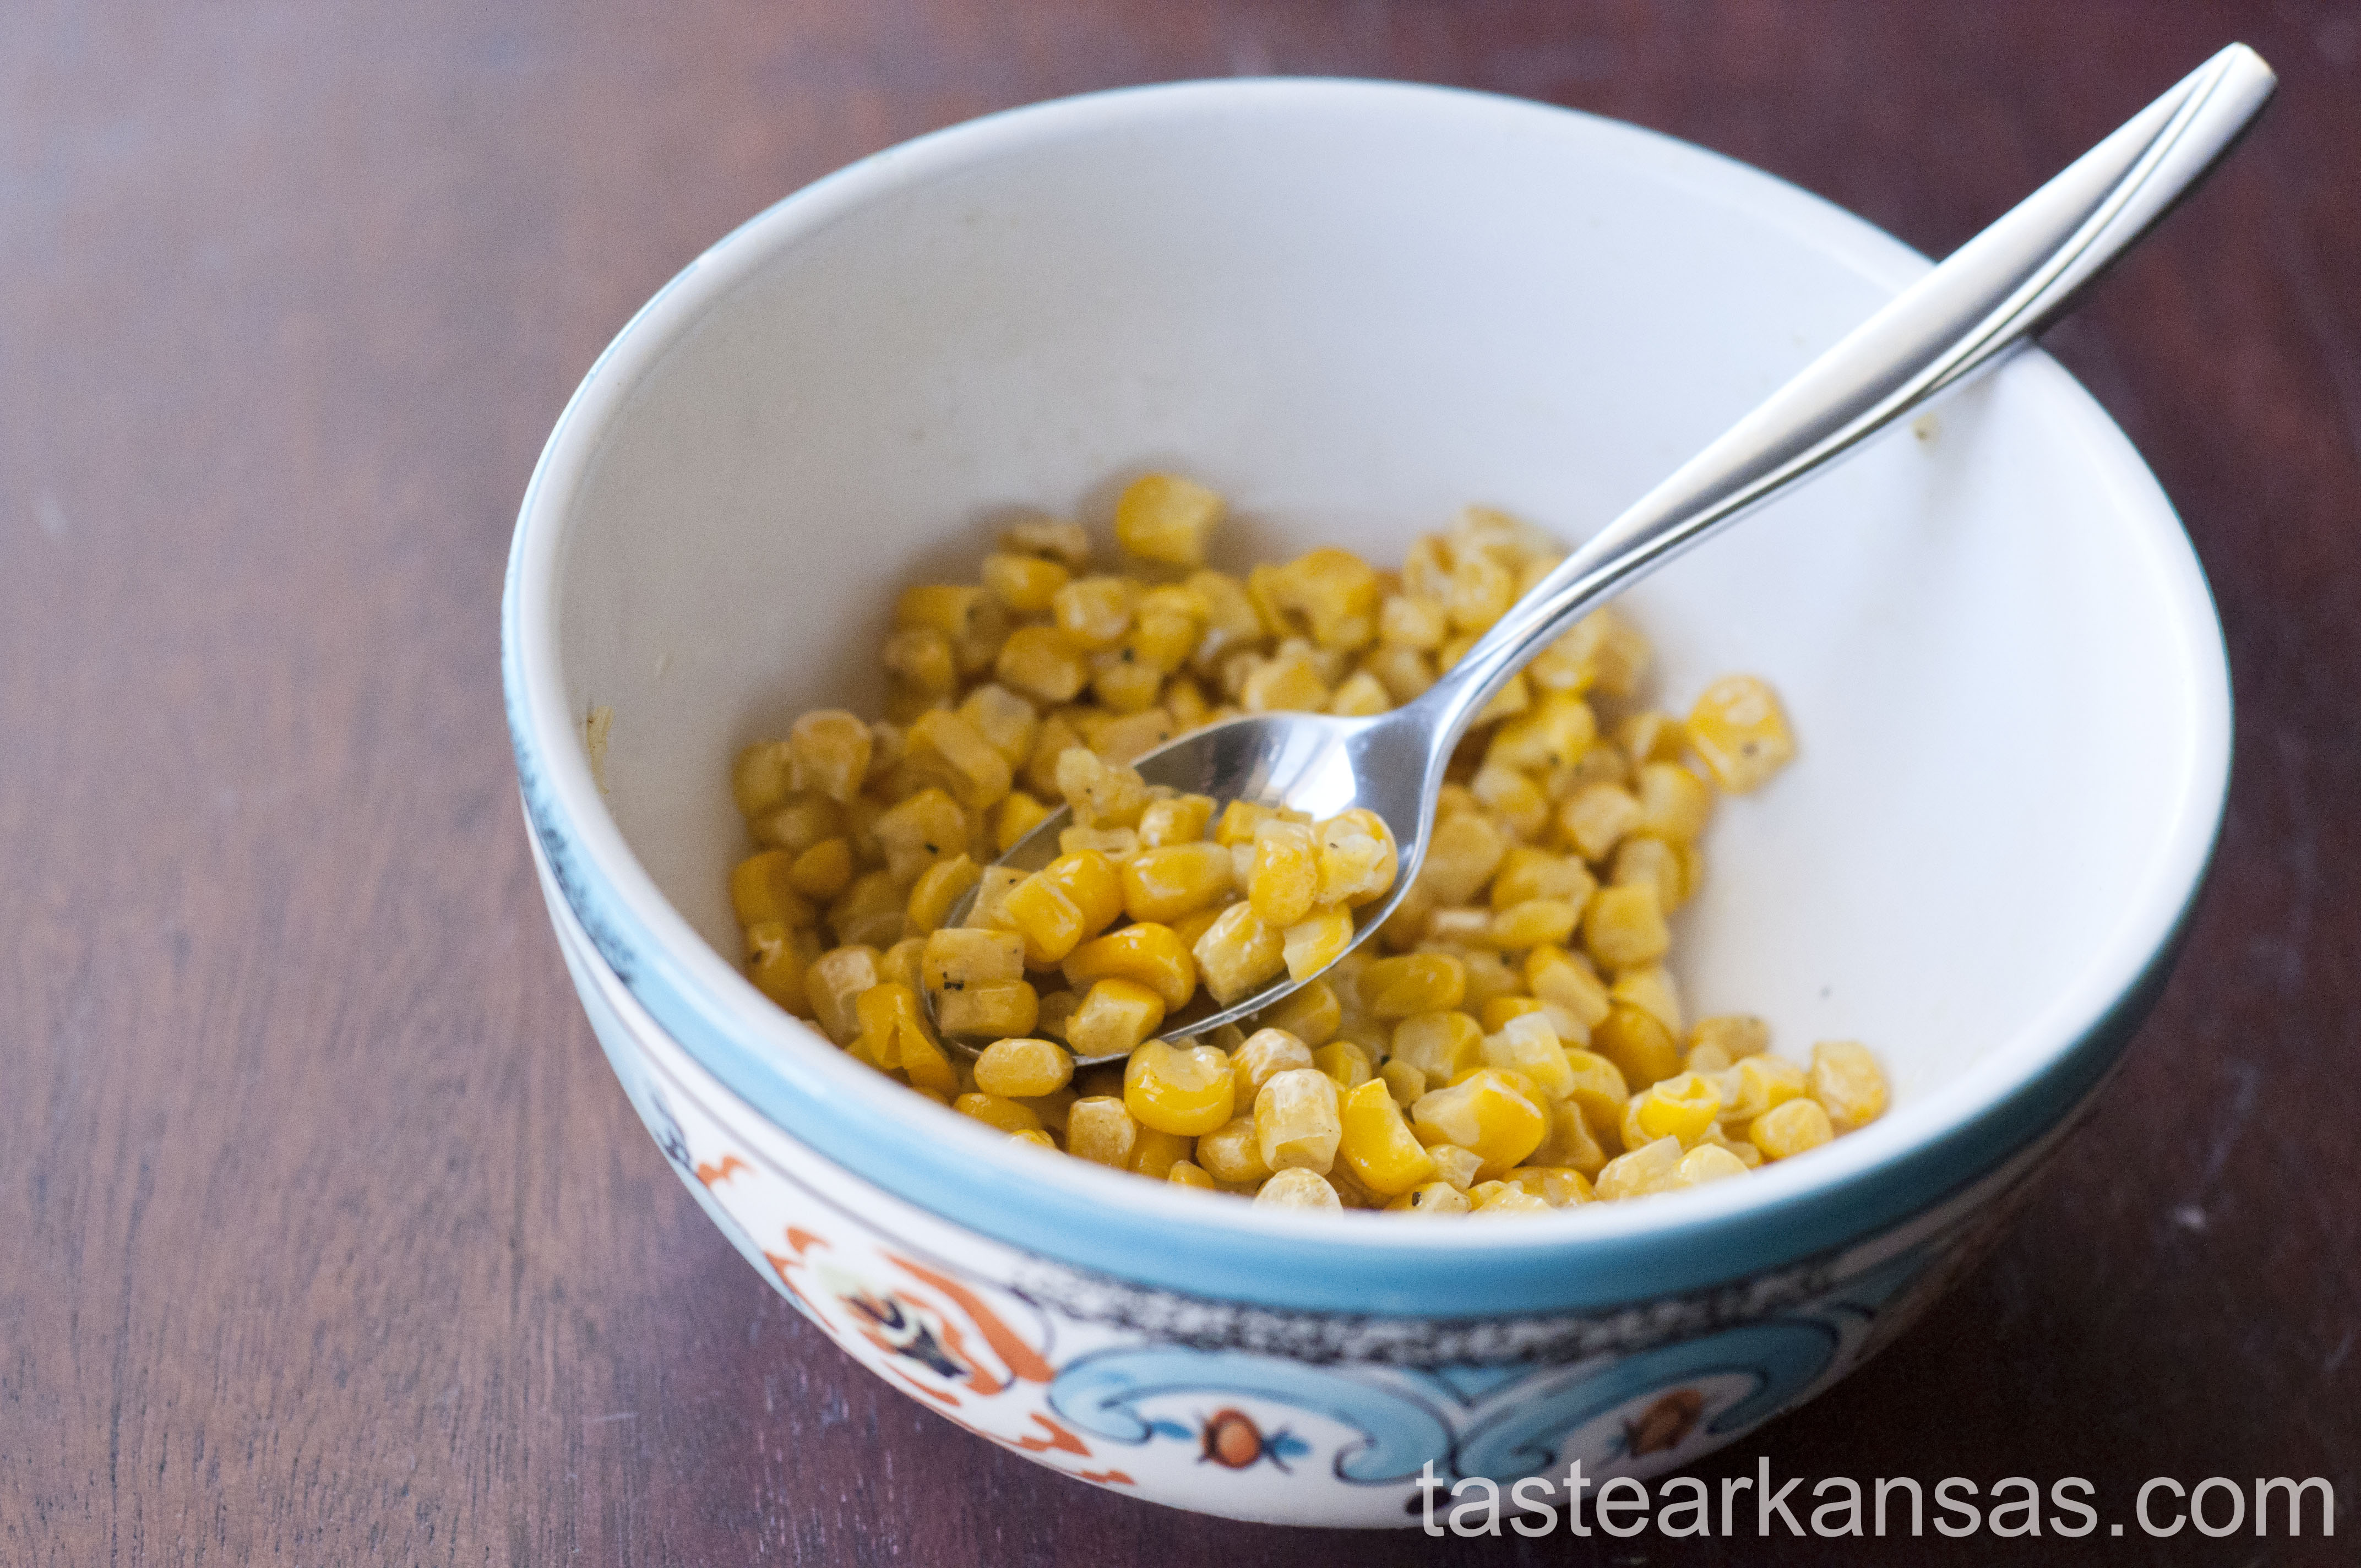 this is an image of a bowl of roasted corn